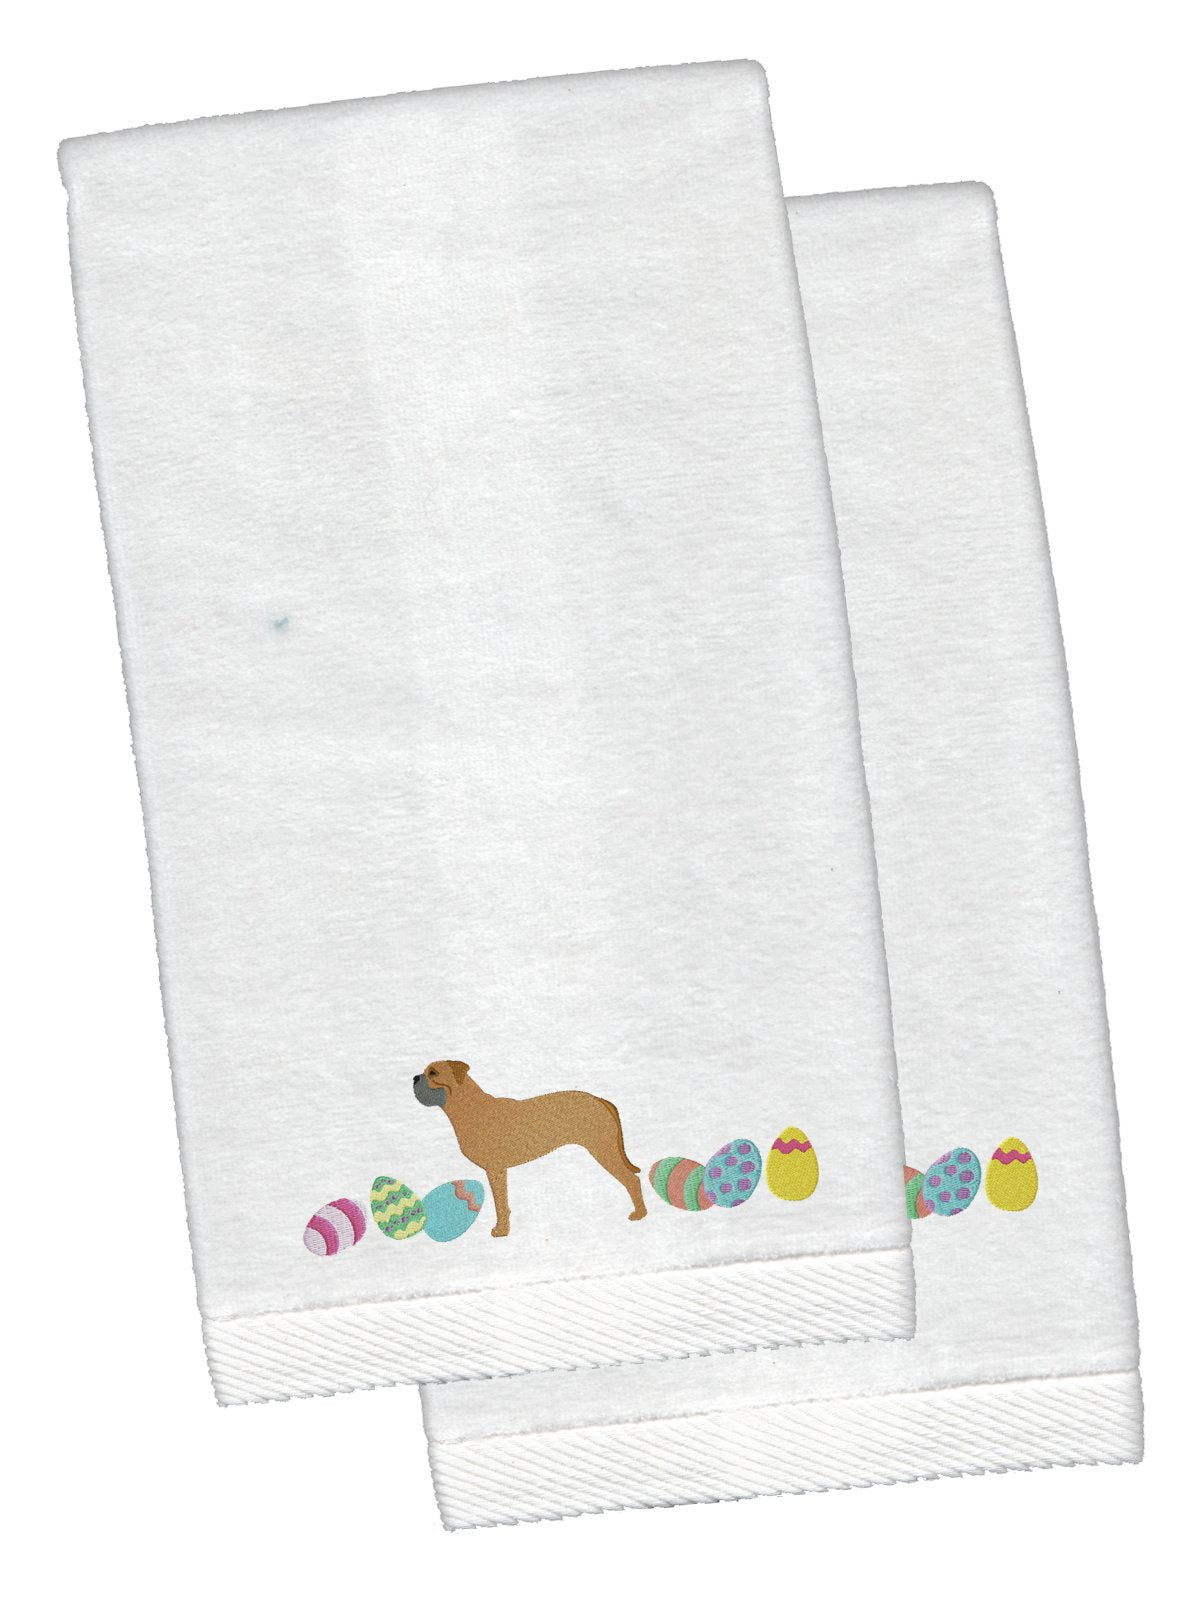 Bullmastiff Easter White Embroidered Plush Hand Towel Set of 2 CK1619KTEMB by Caroline's Treasures